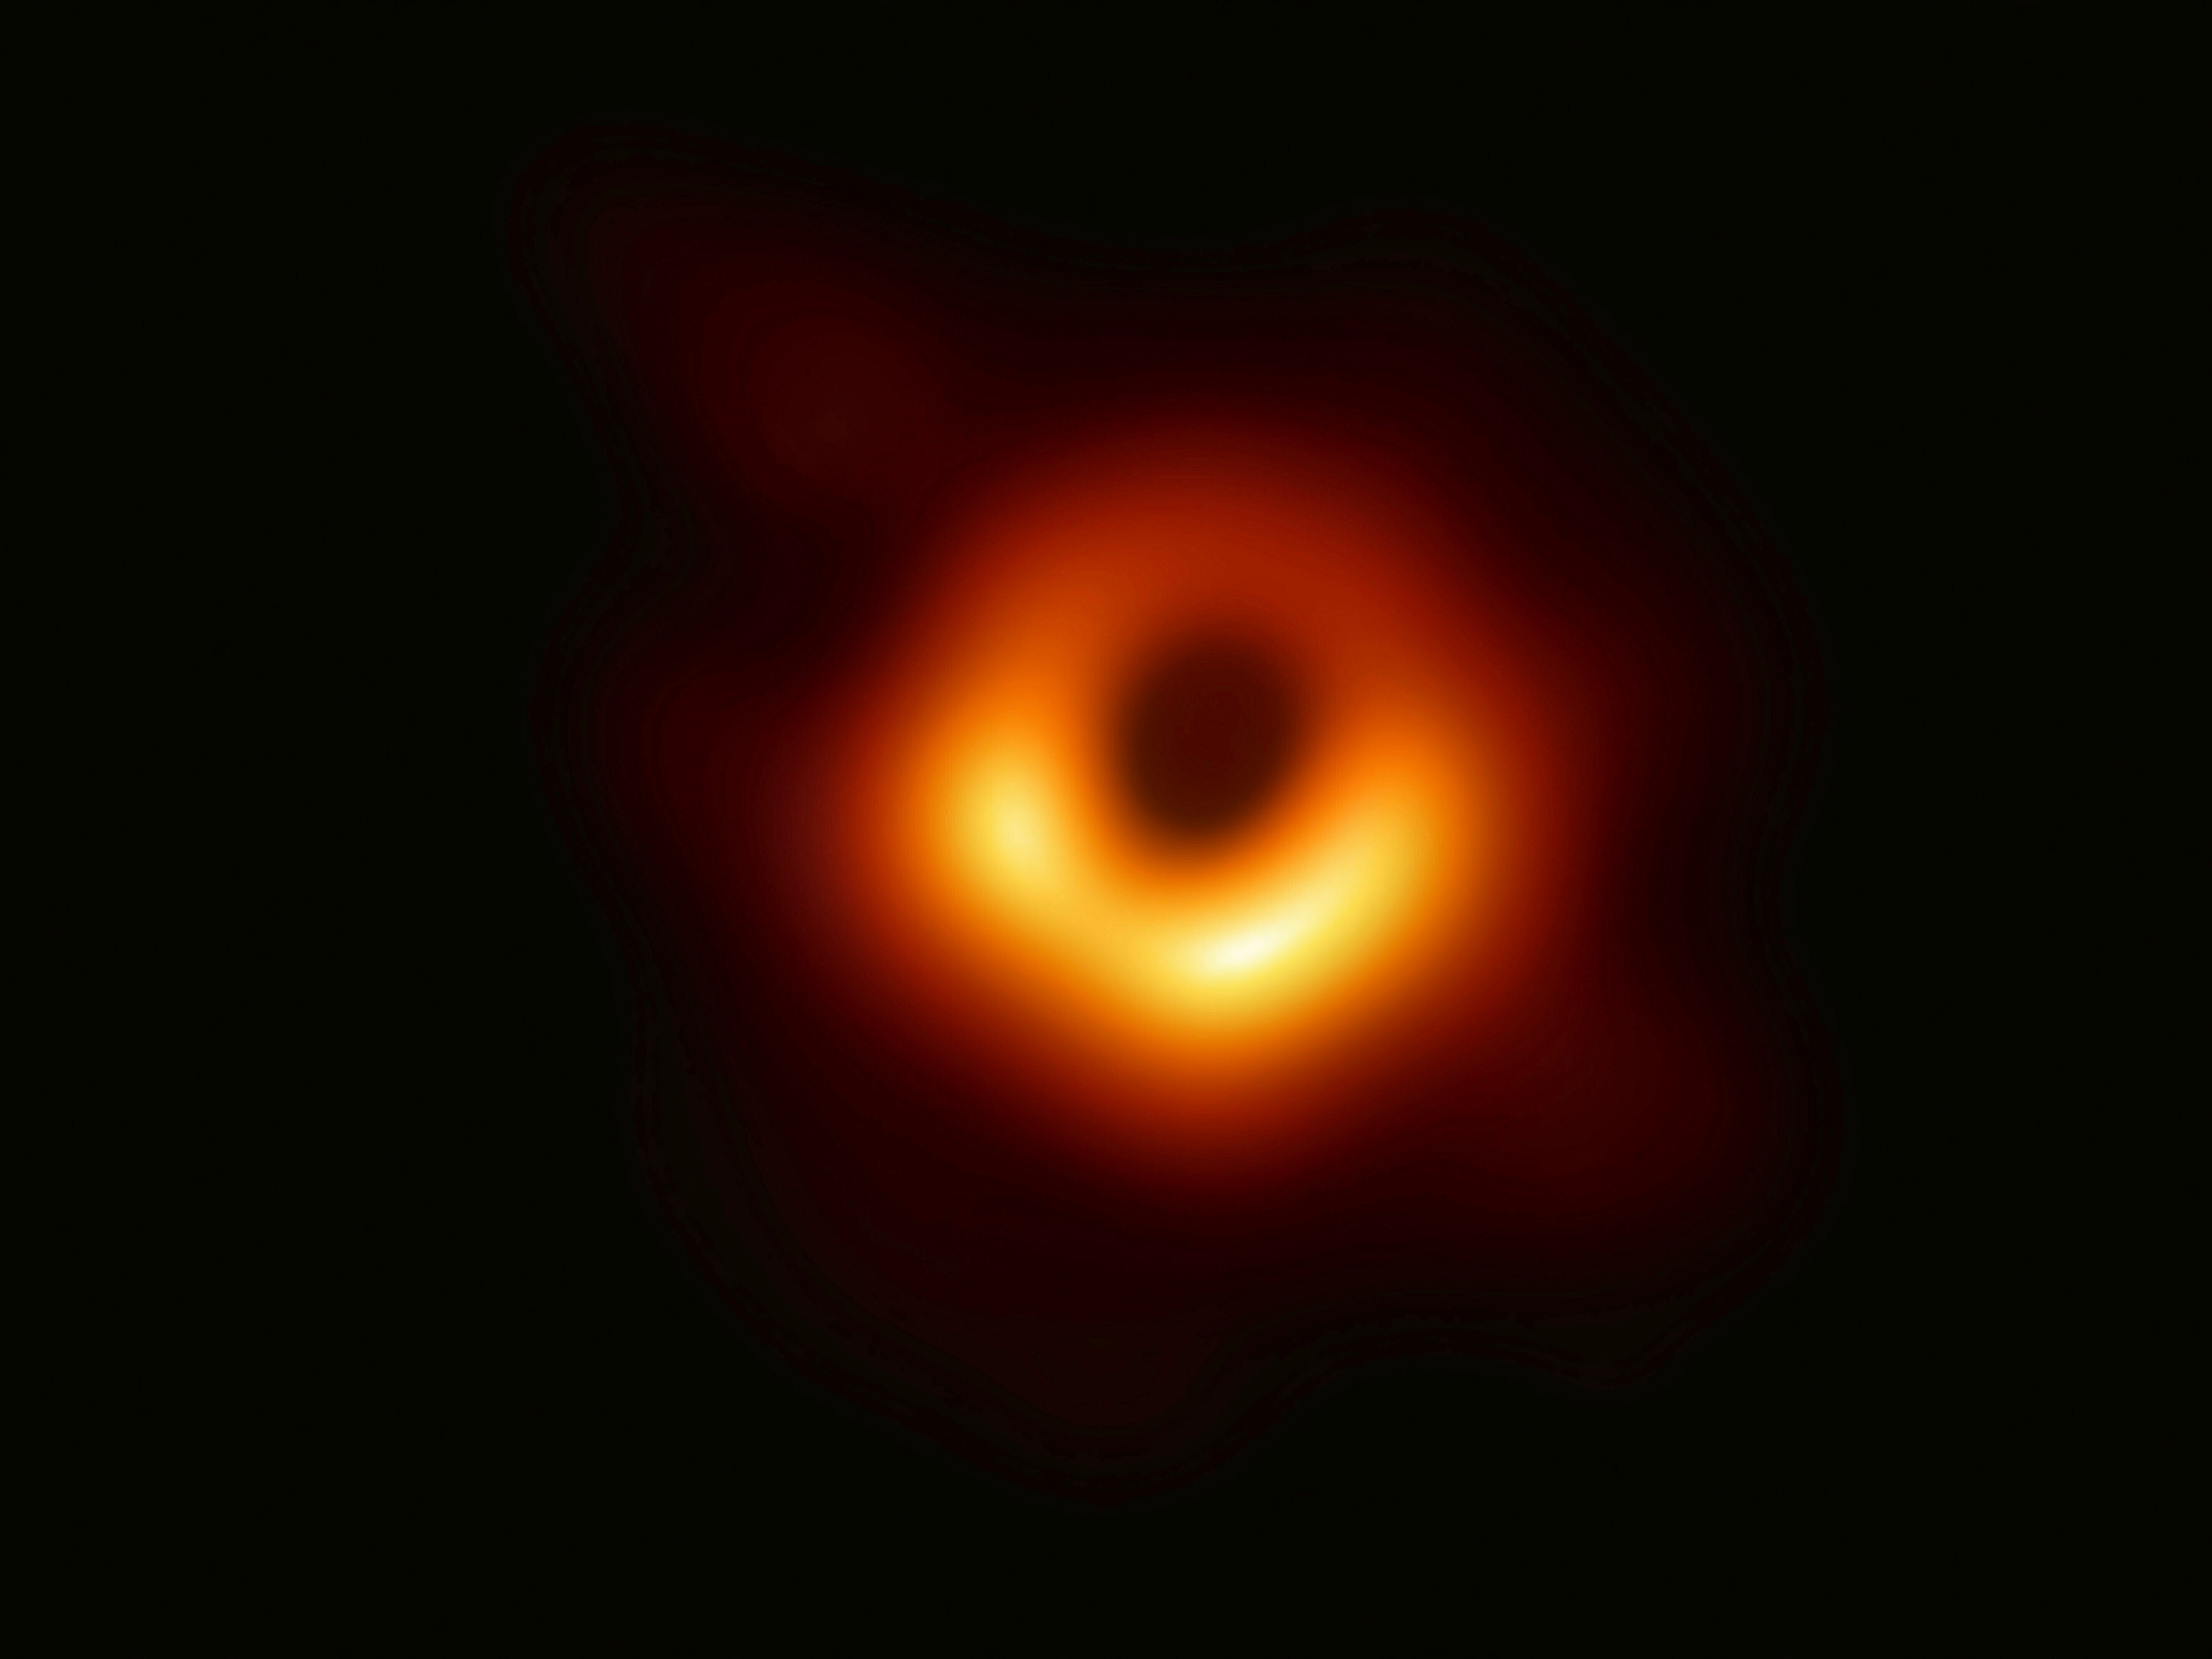 This image, released Wednesday, April 10, 2019, by the Event Horizon Telescope, shows a black hole. Scientists revealed the first image ever made of the cosmic phenomenon after assembling data gathered by a network of radio telescopes around the world.